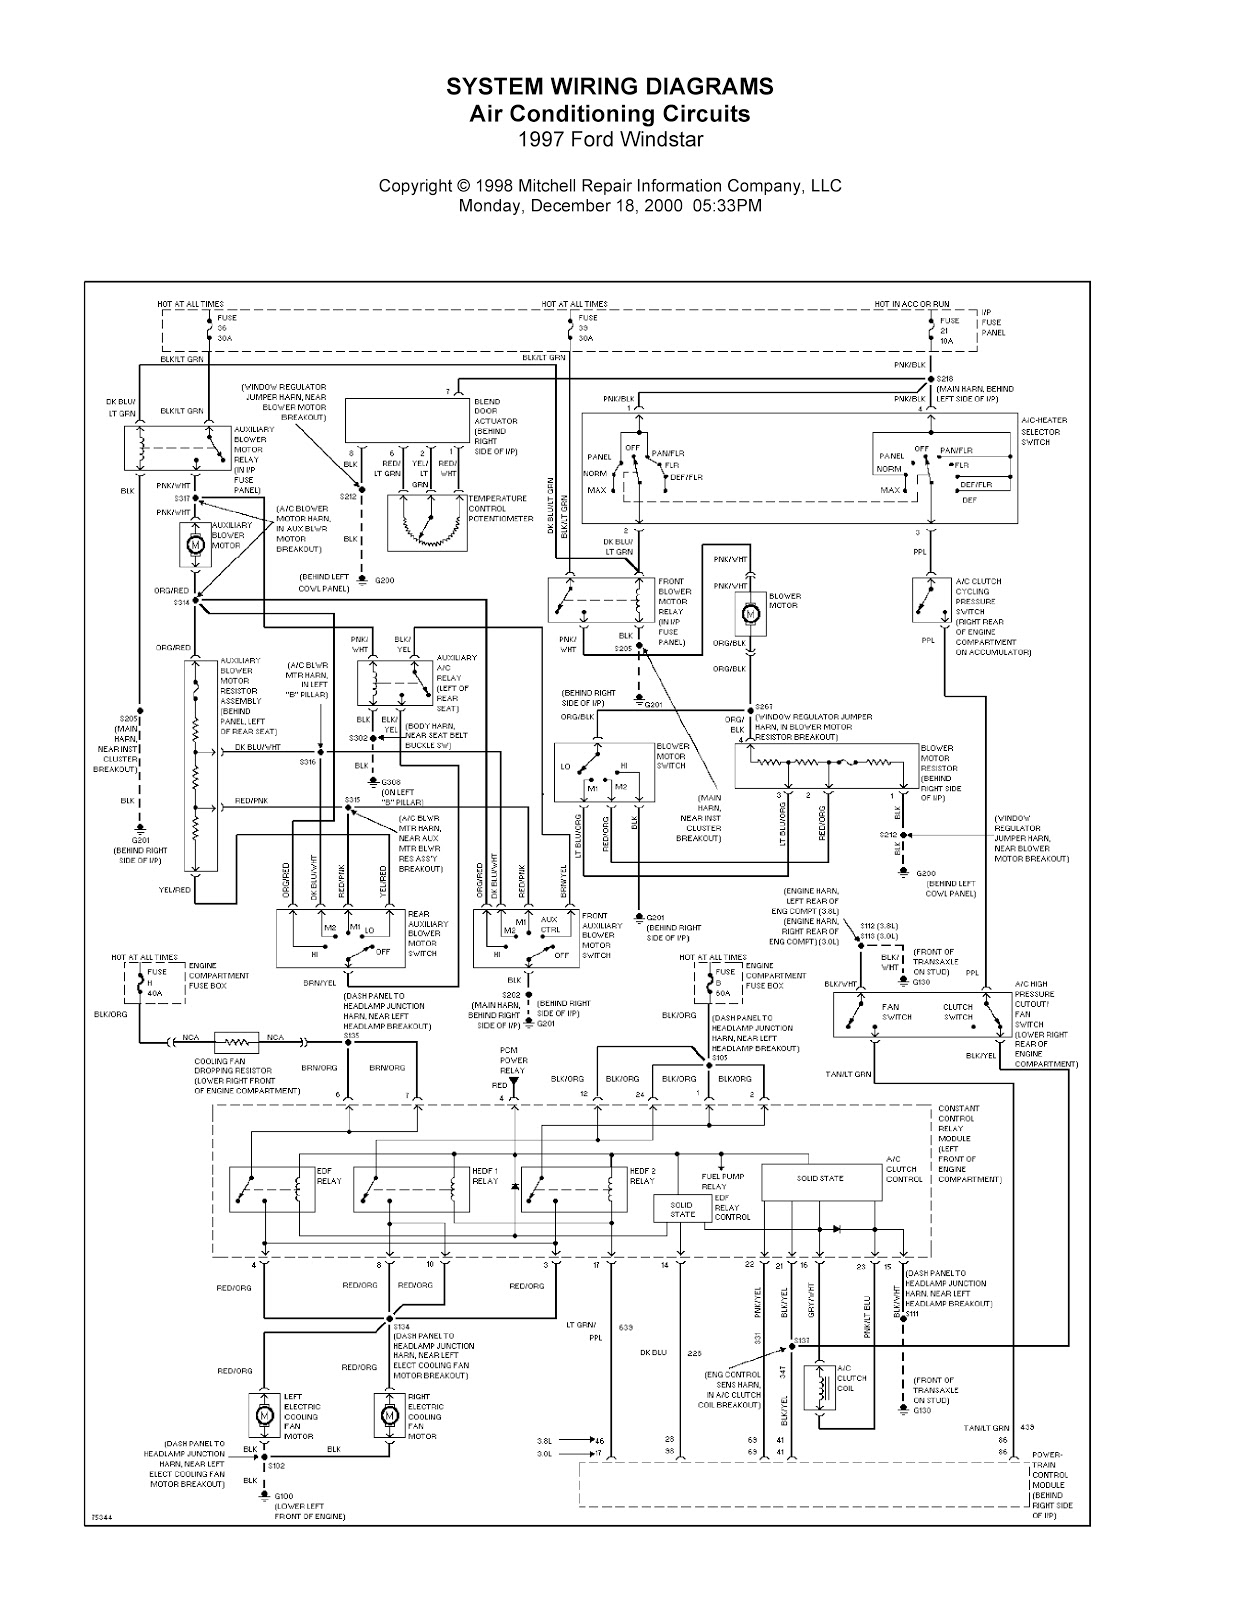 0001 1997 ford windstar complete system wiring diagrams wiring 1999 ford explorer rear wiper wiring diagram at soozxer.org